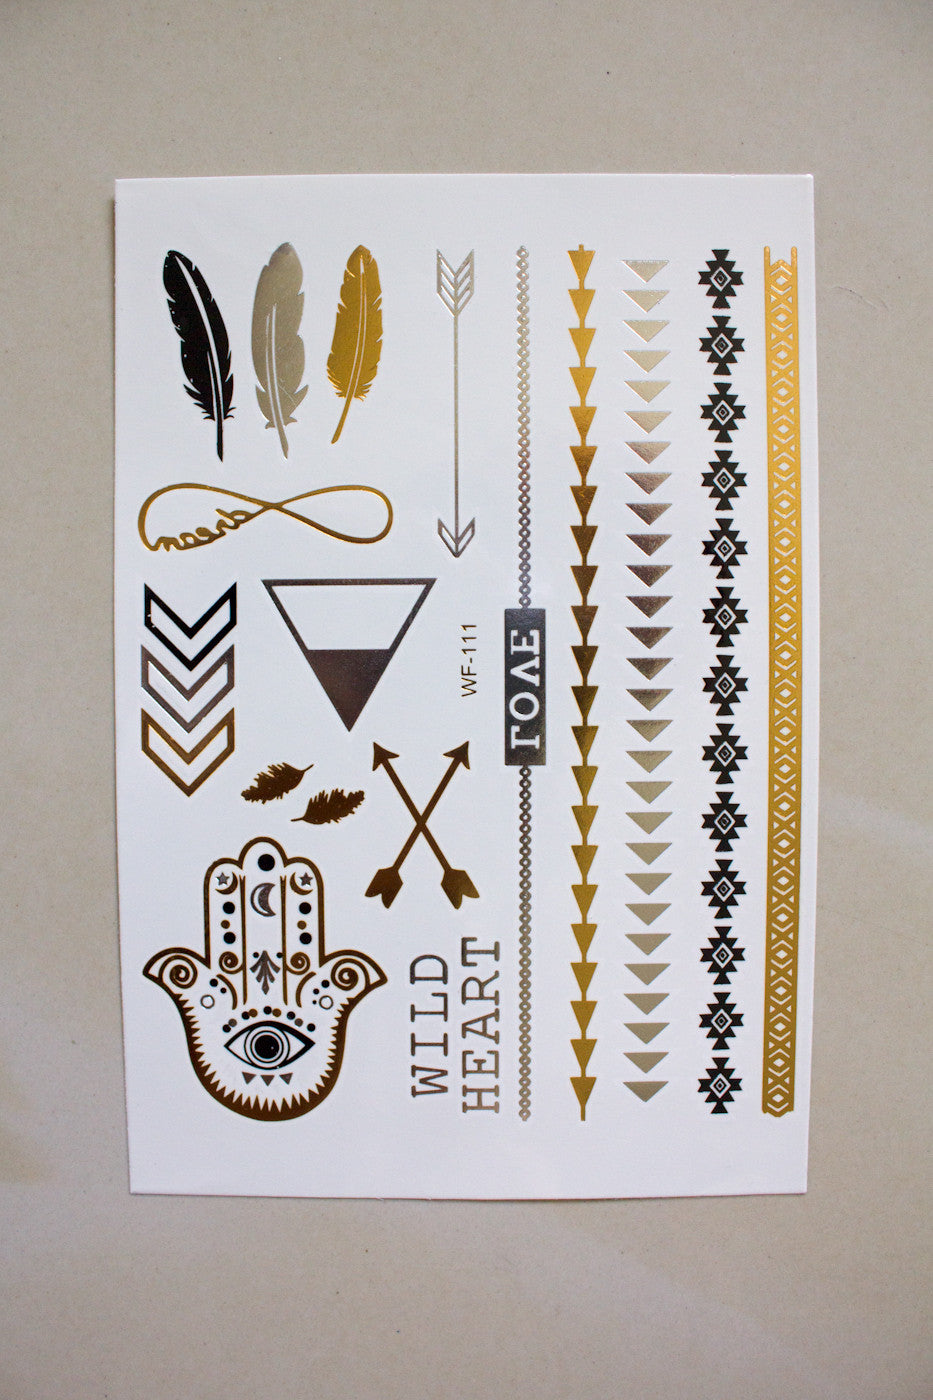 Metallic Temporary Tattoos - shania - Peep Boutique - www.peepb.com - 18